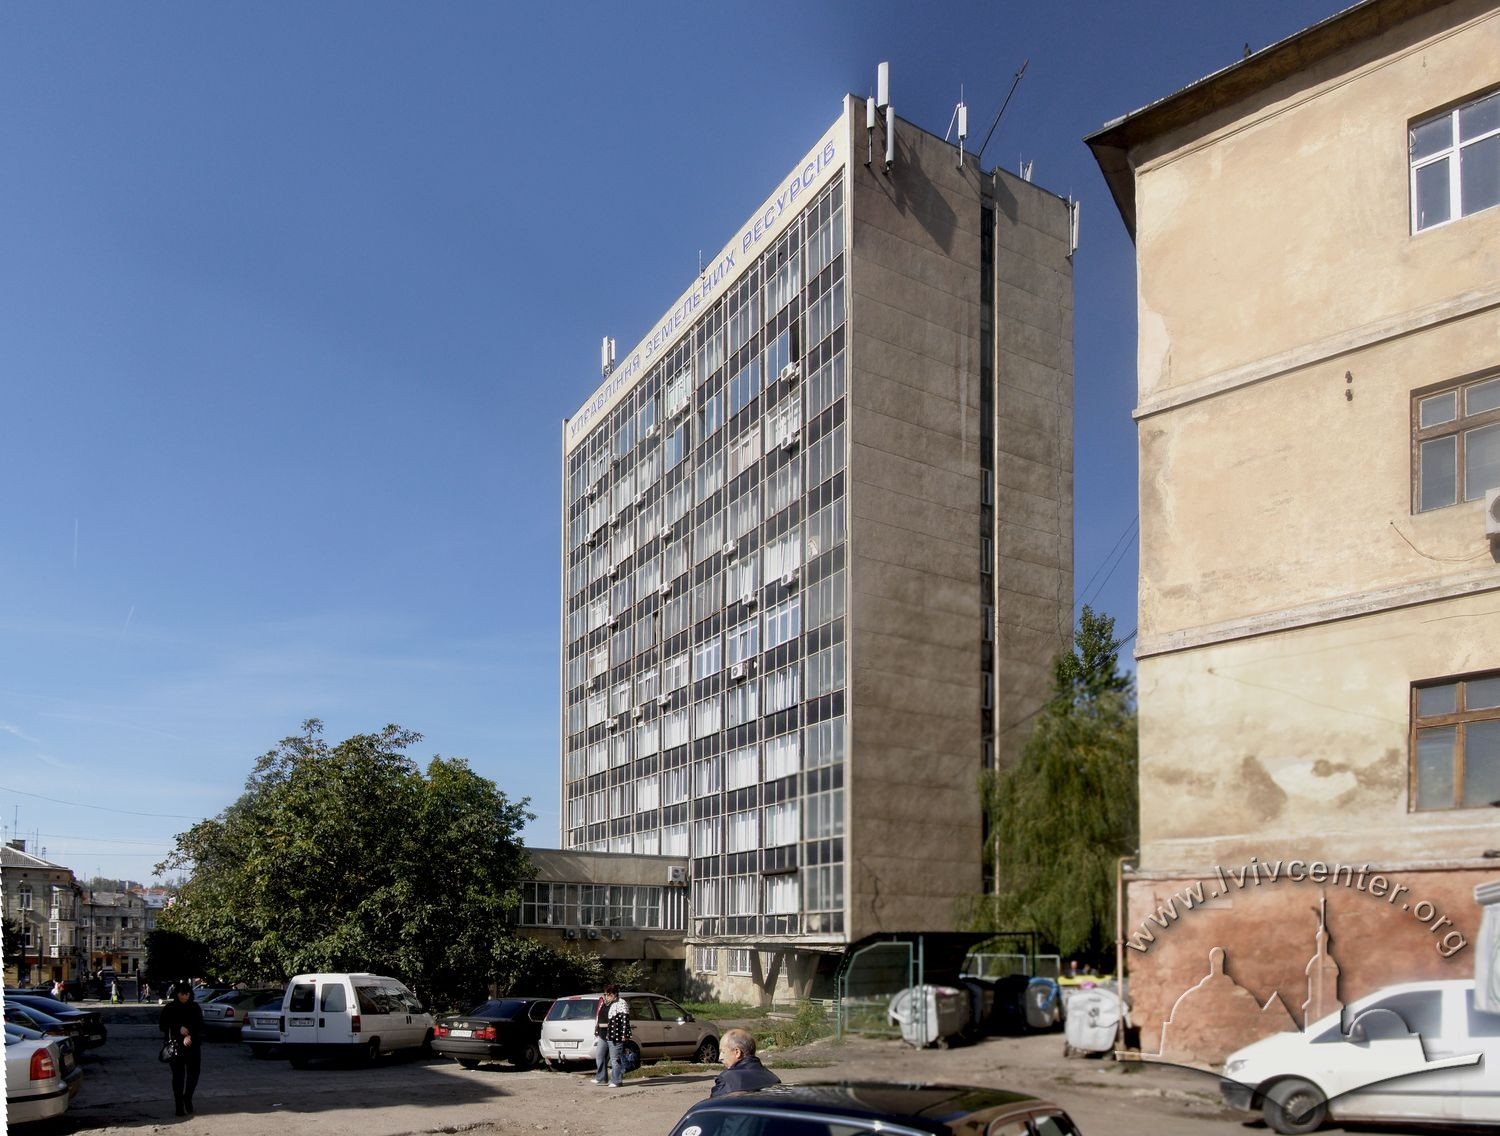 Prosp. Chornovola, 4. View of the building from Medova str./Photo courtesy of Andriy Shulyar, 2012